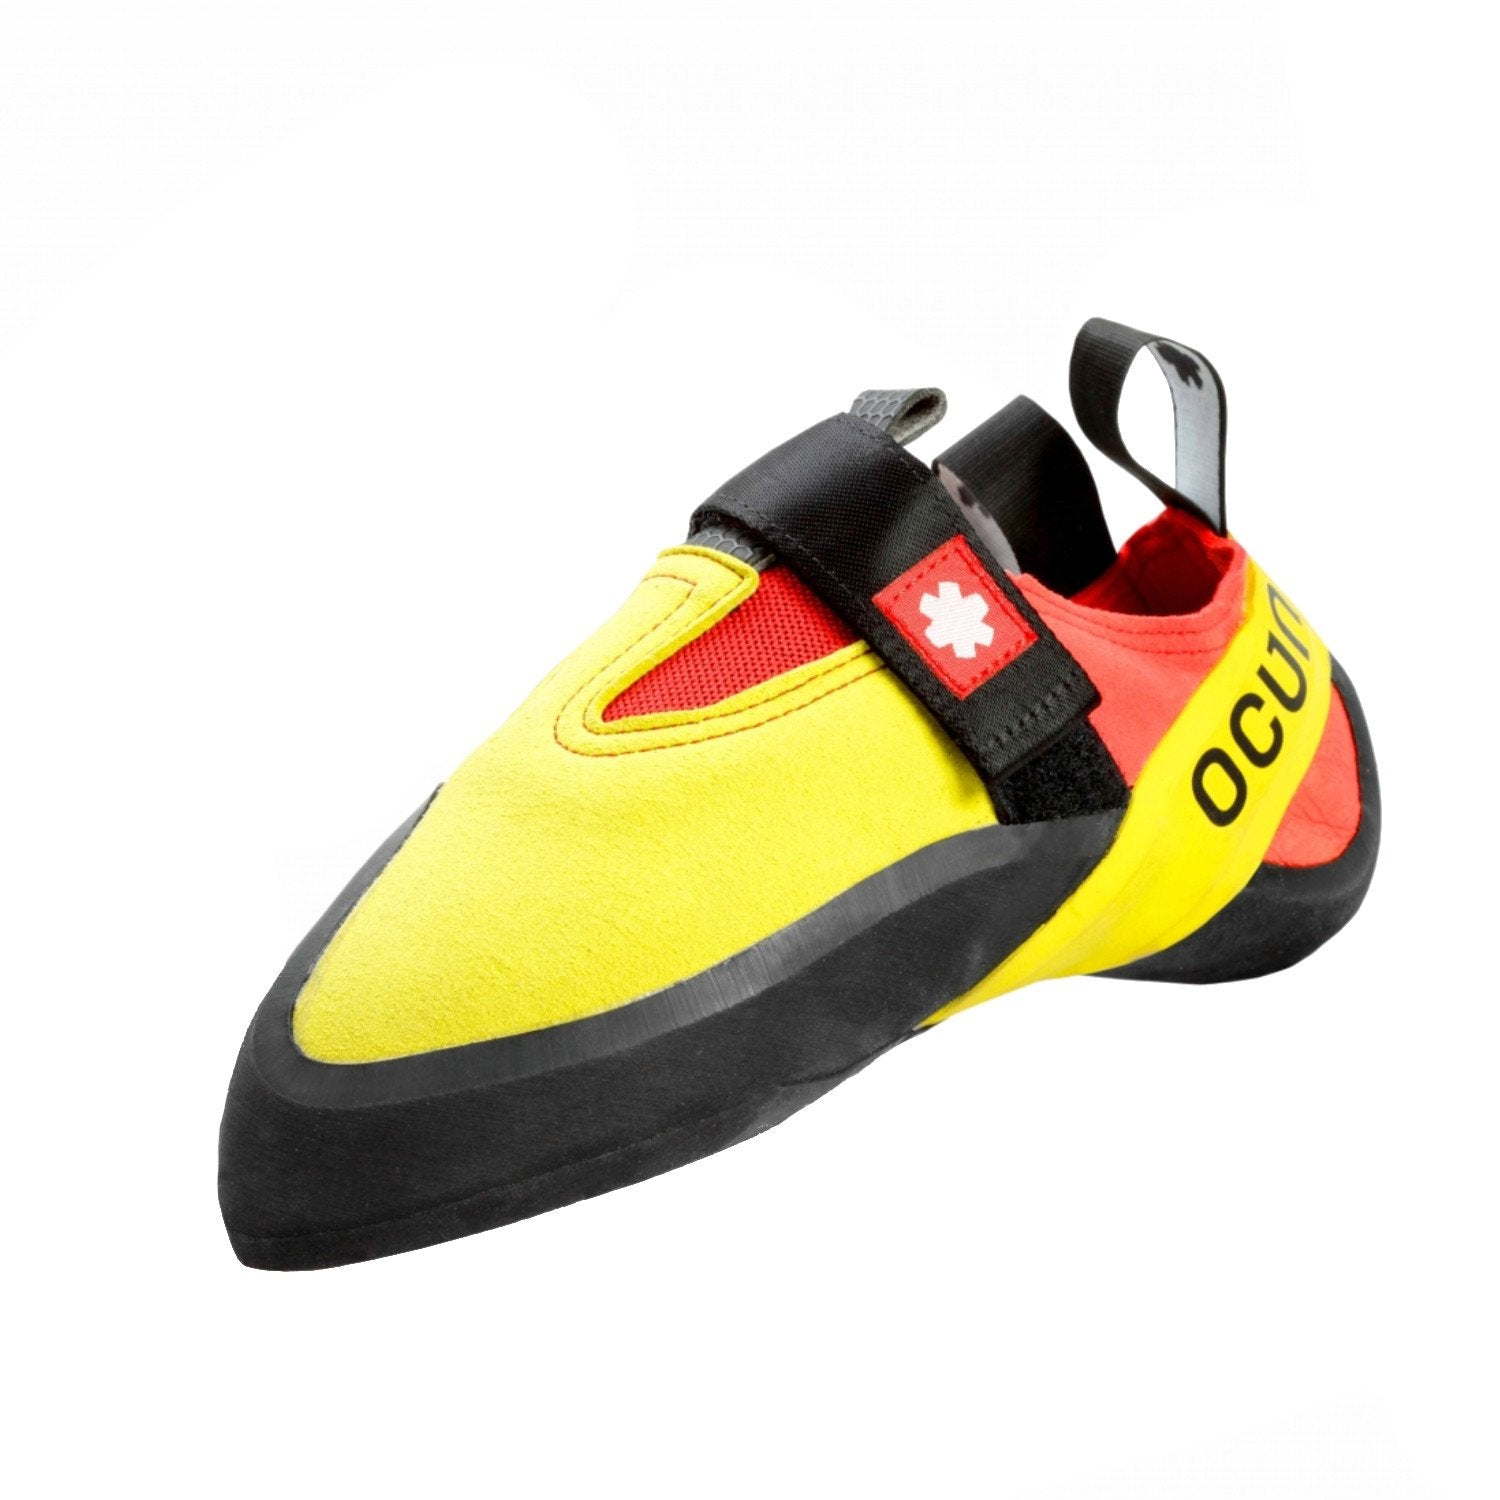 Ocun Rival kids climbing shoe, in black, yellow and orange colours